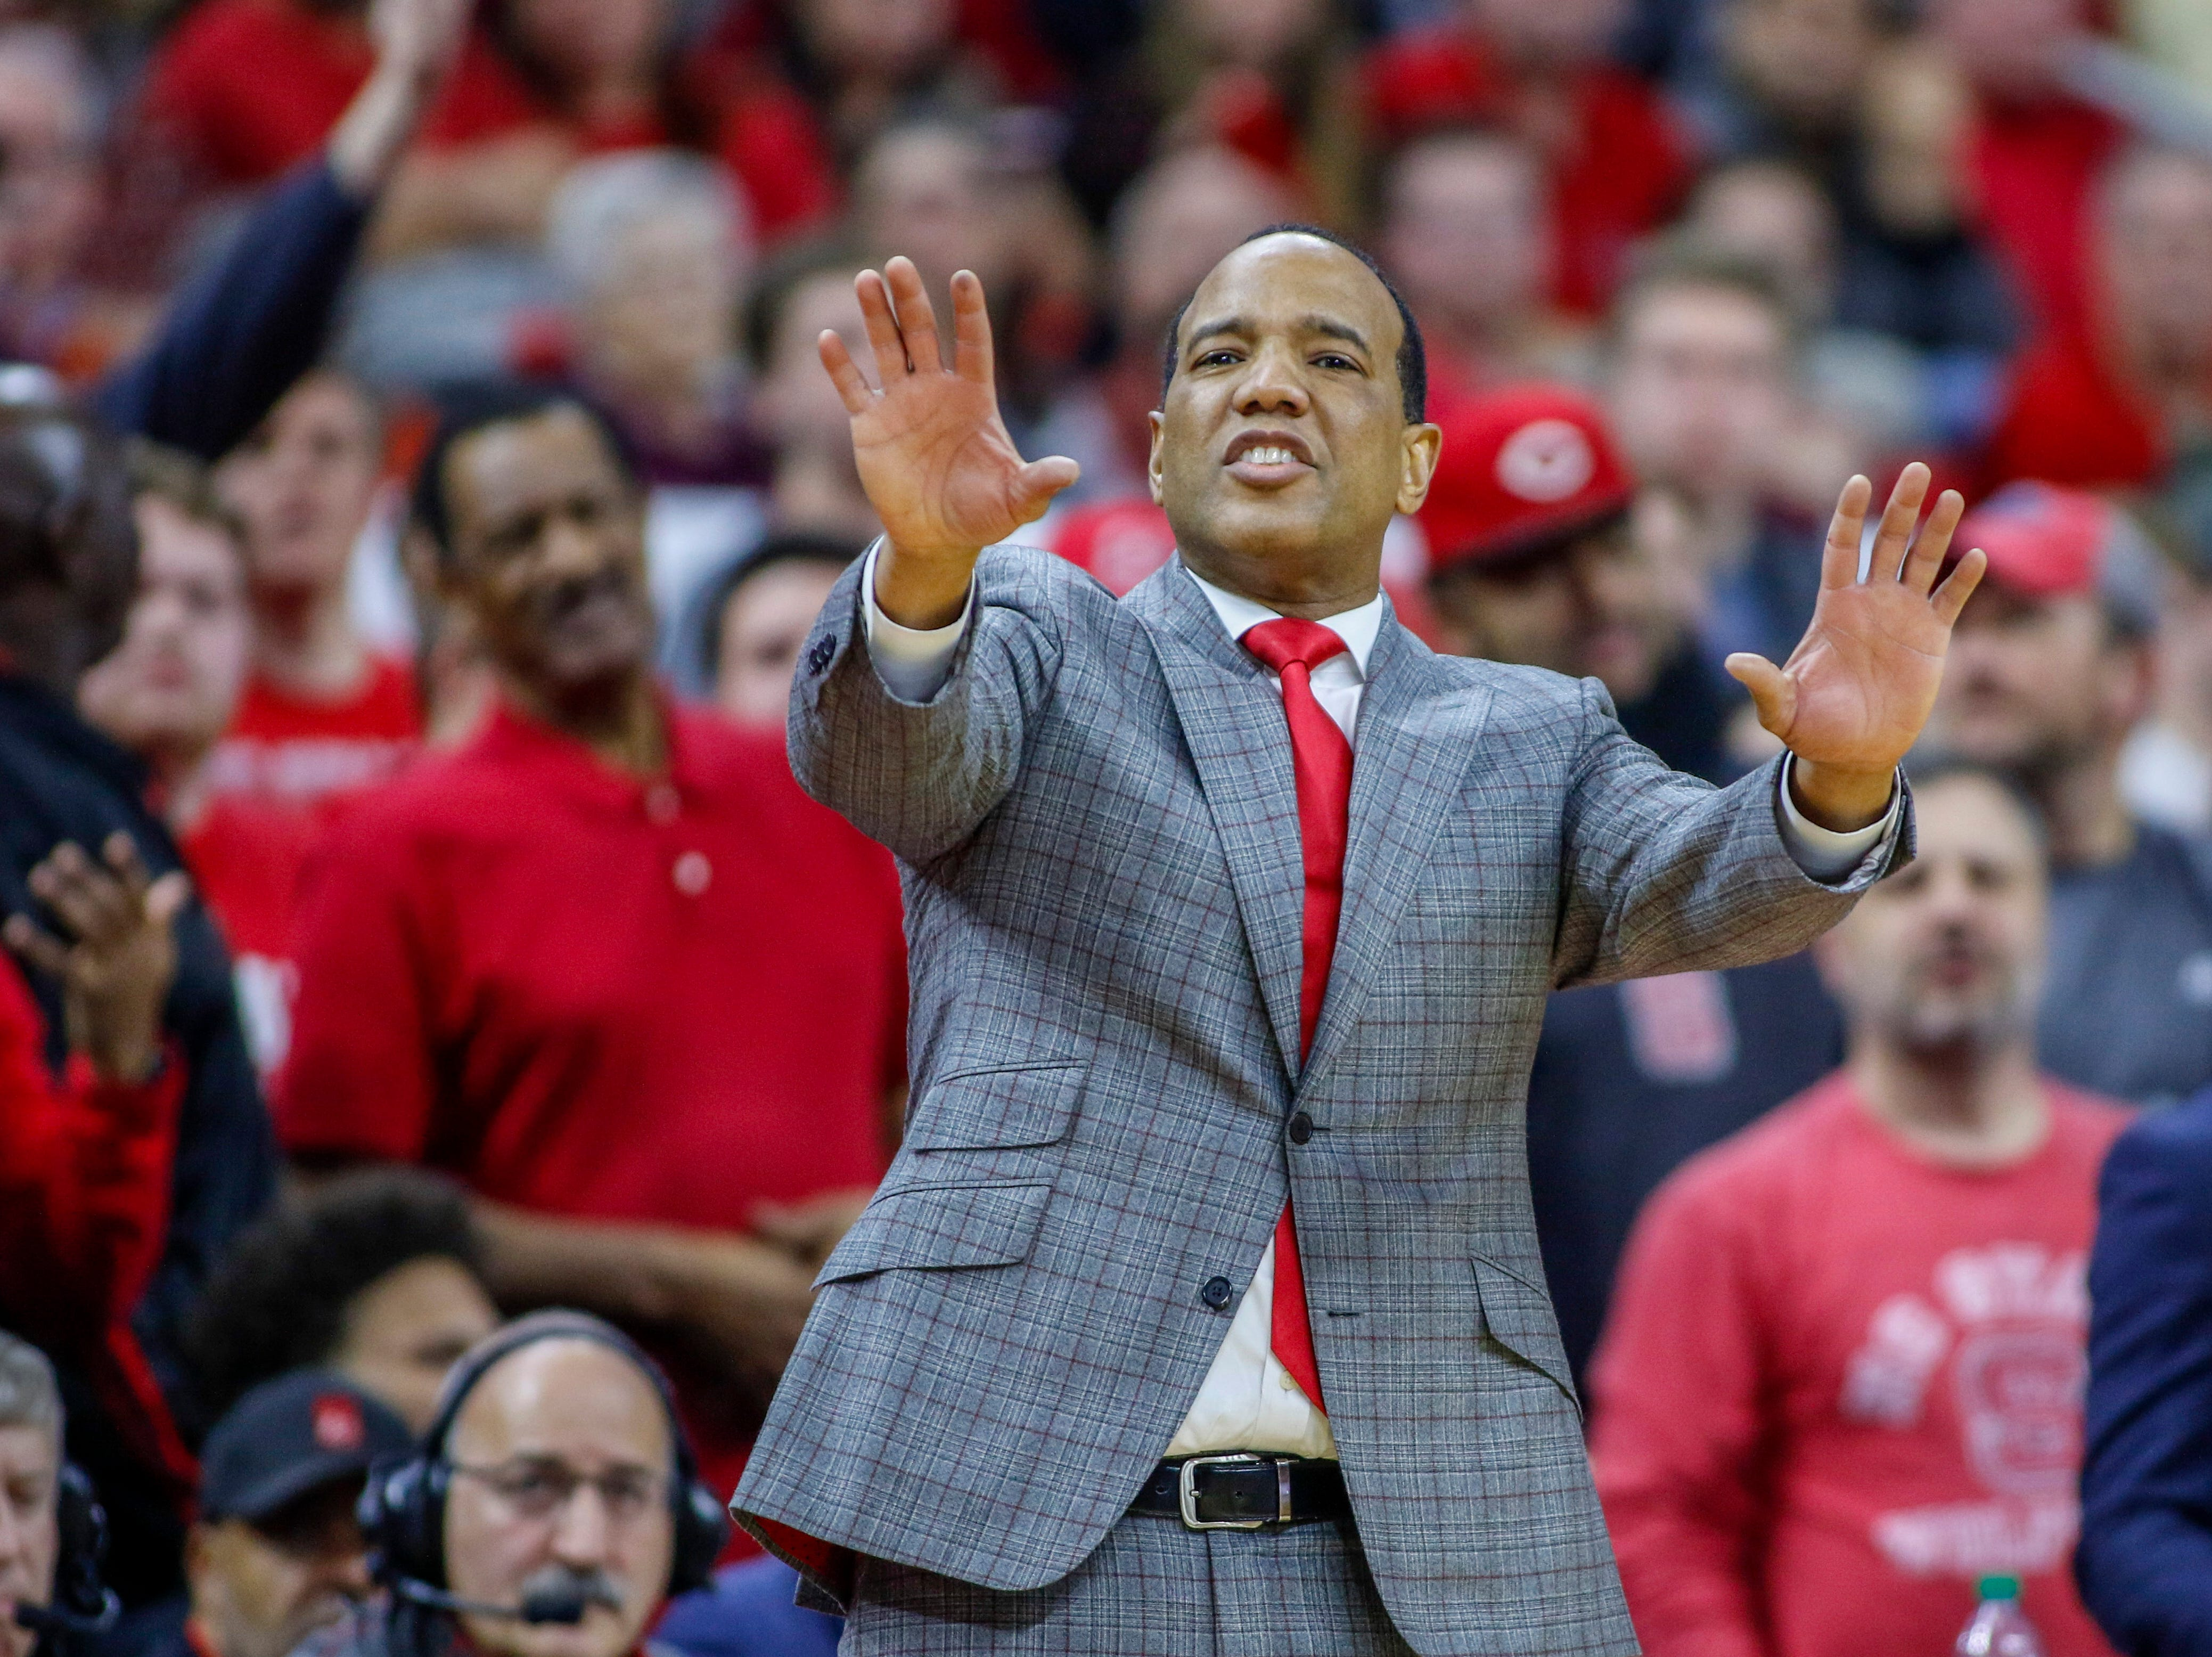 Dec 19, 2018; Raleigh, NC, USA; North Carolina State Wolfpack head coach Kevin Keatts directs his team as they play against the Auburn Tigers in the second half at PNC Arena. The North Carolina State Wolfpack won 78-71. Mandatory Credit: Nell Redmond-USA TODAY Sports